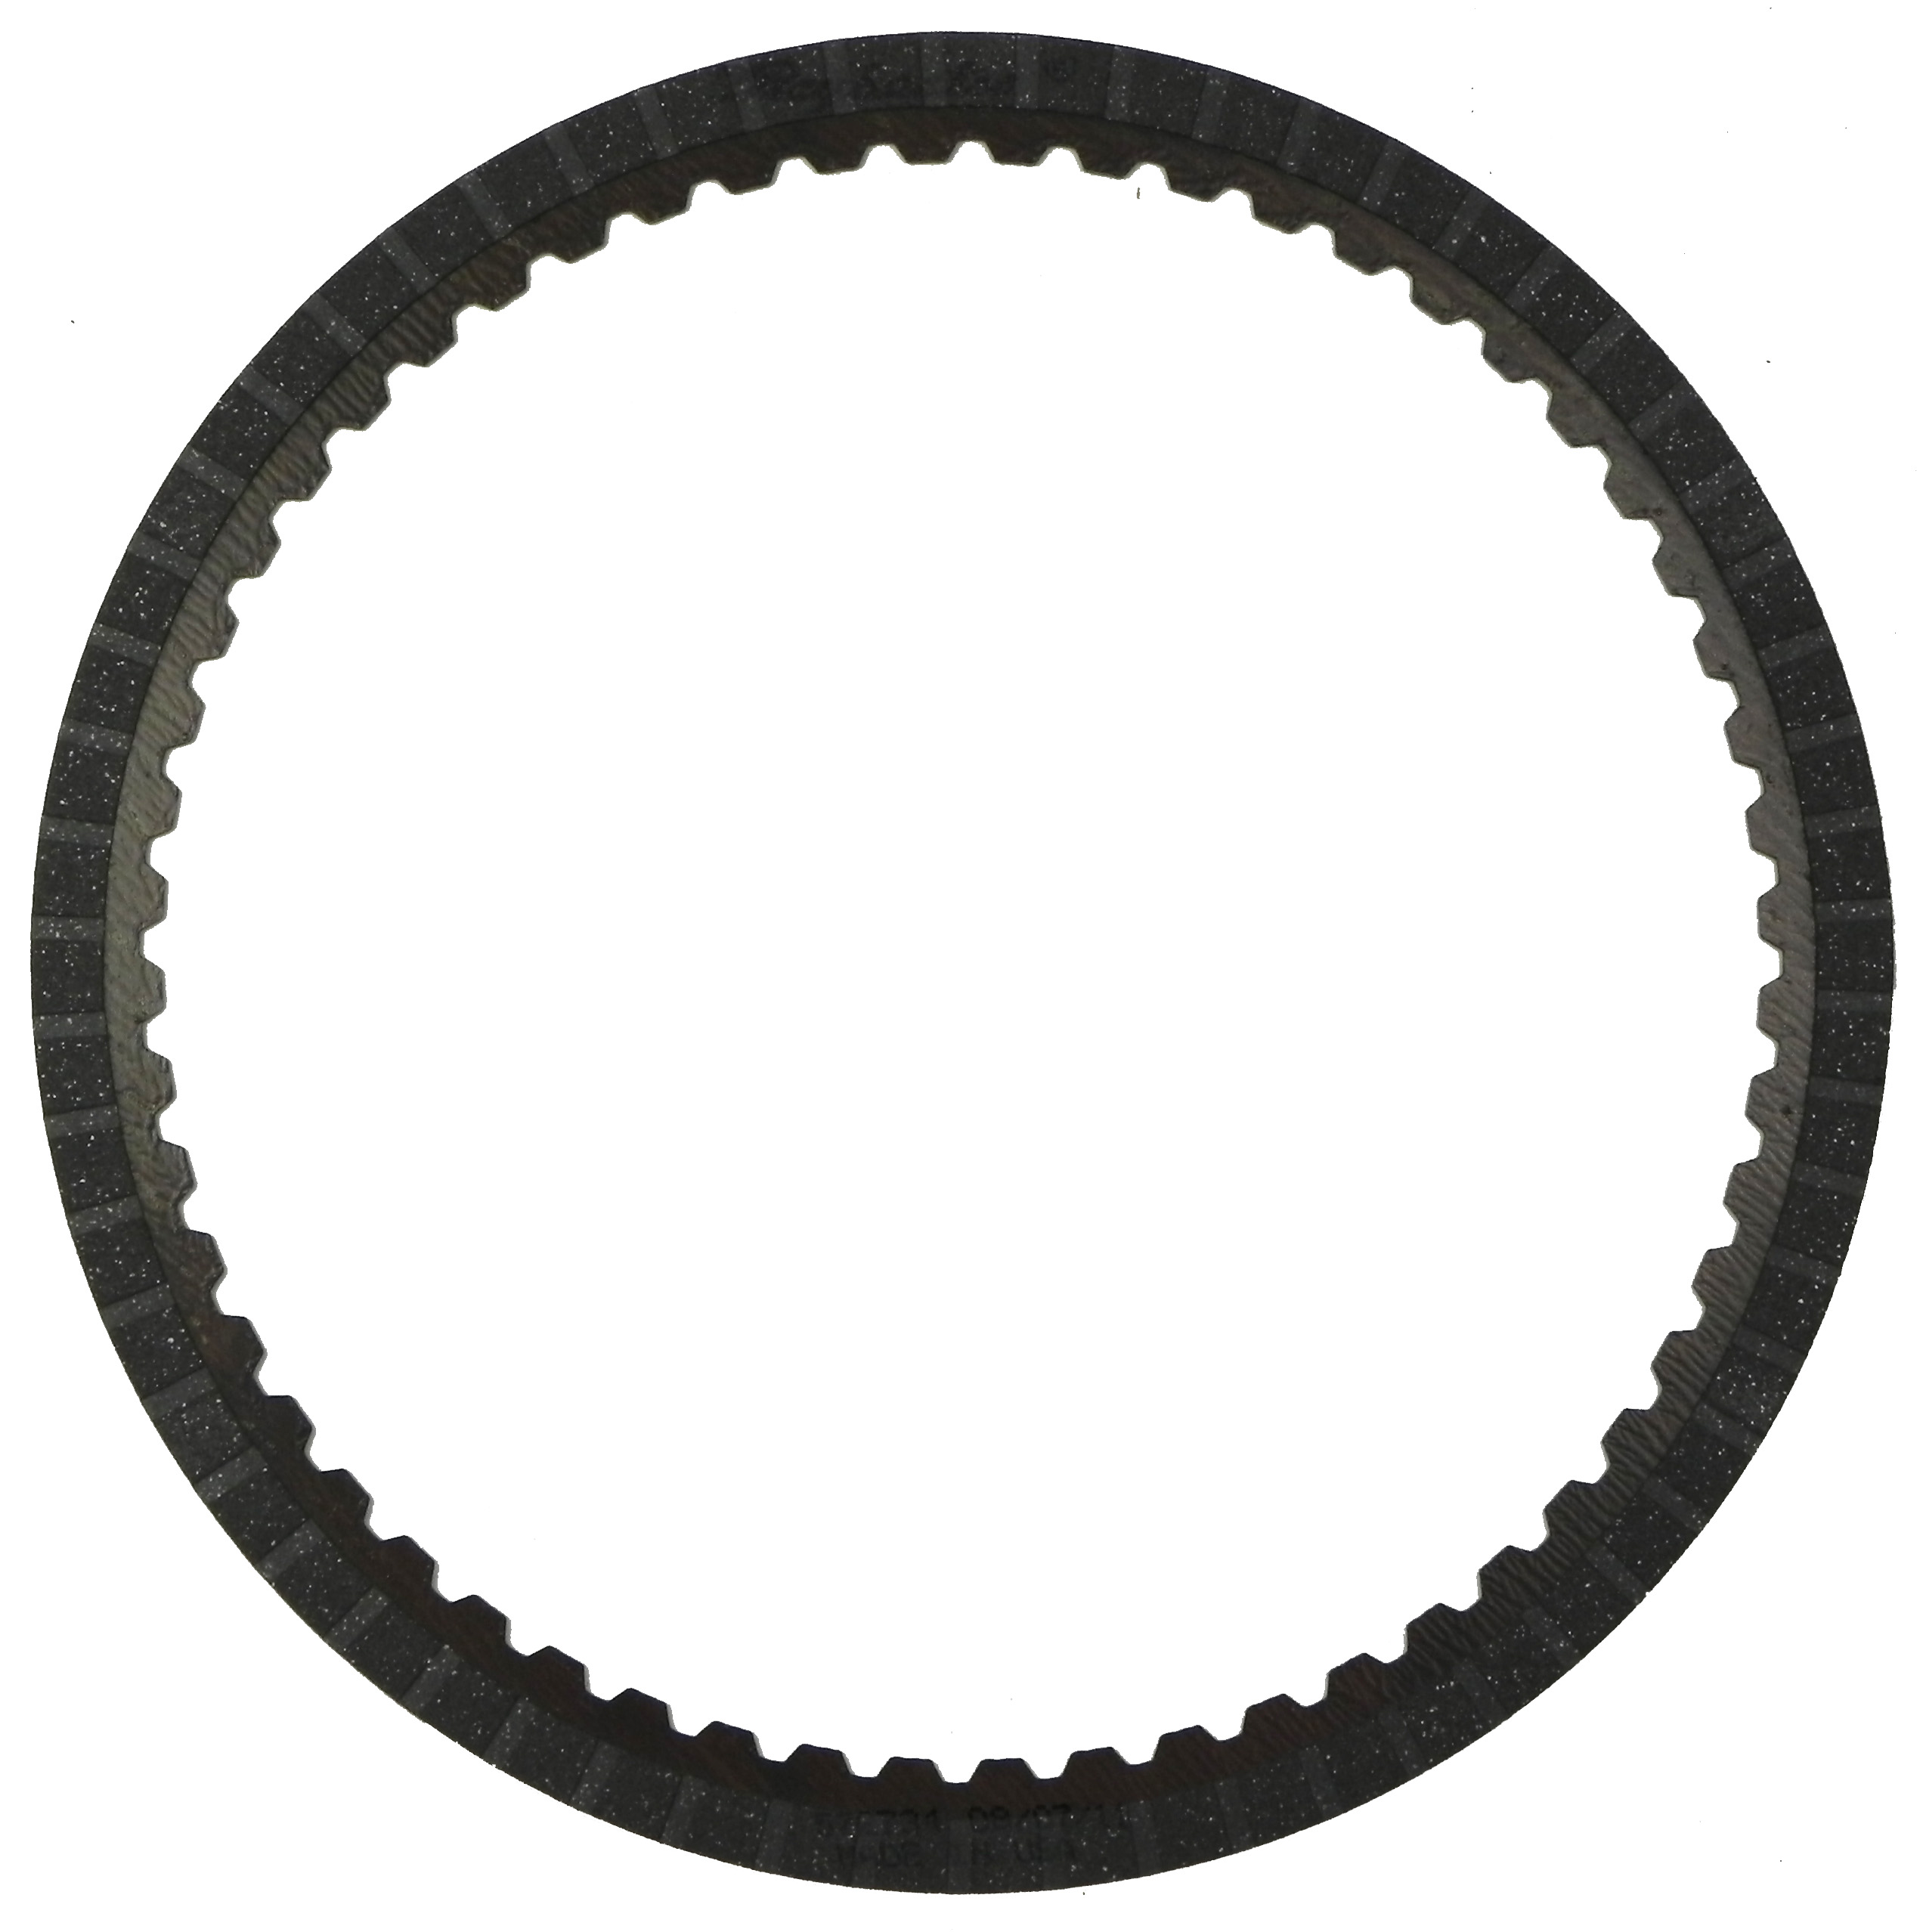 R572734 | 2004-ON Friction Clutch Plate High Energy K1 09G High Energy